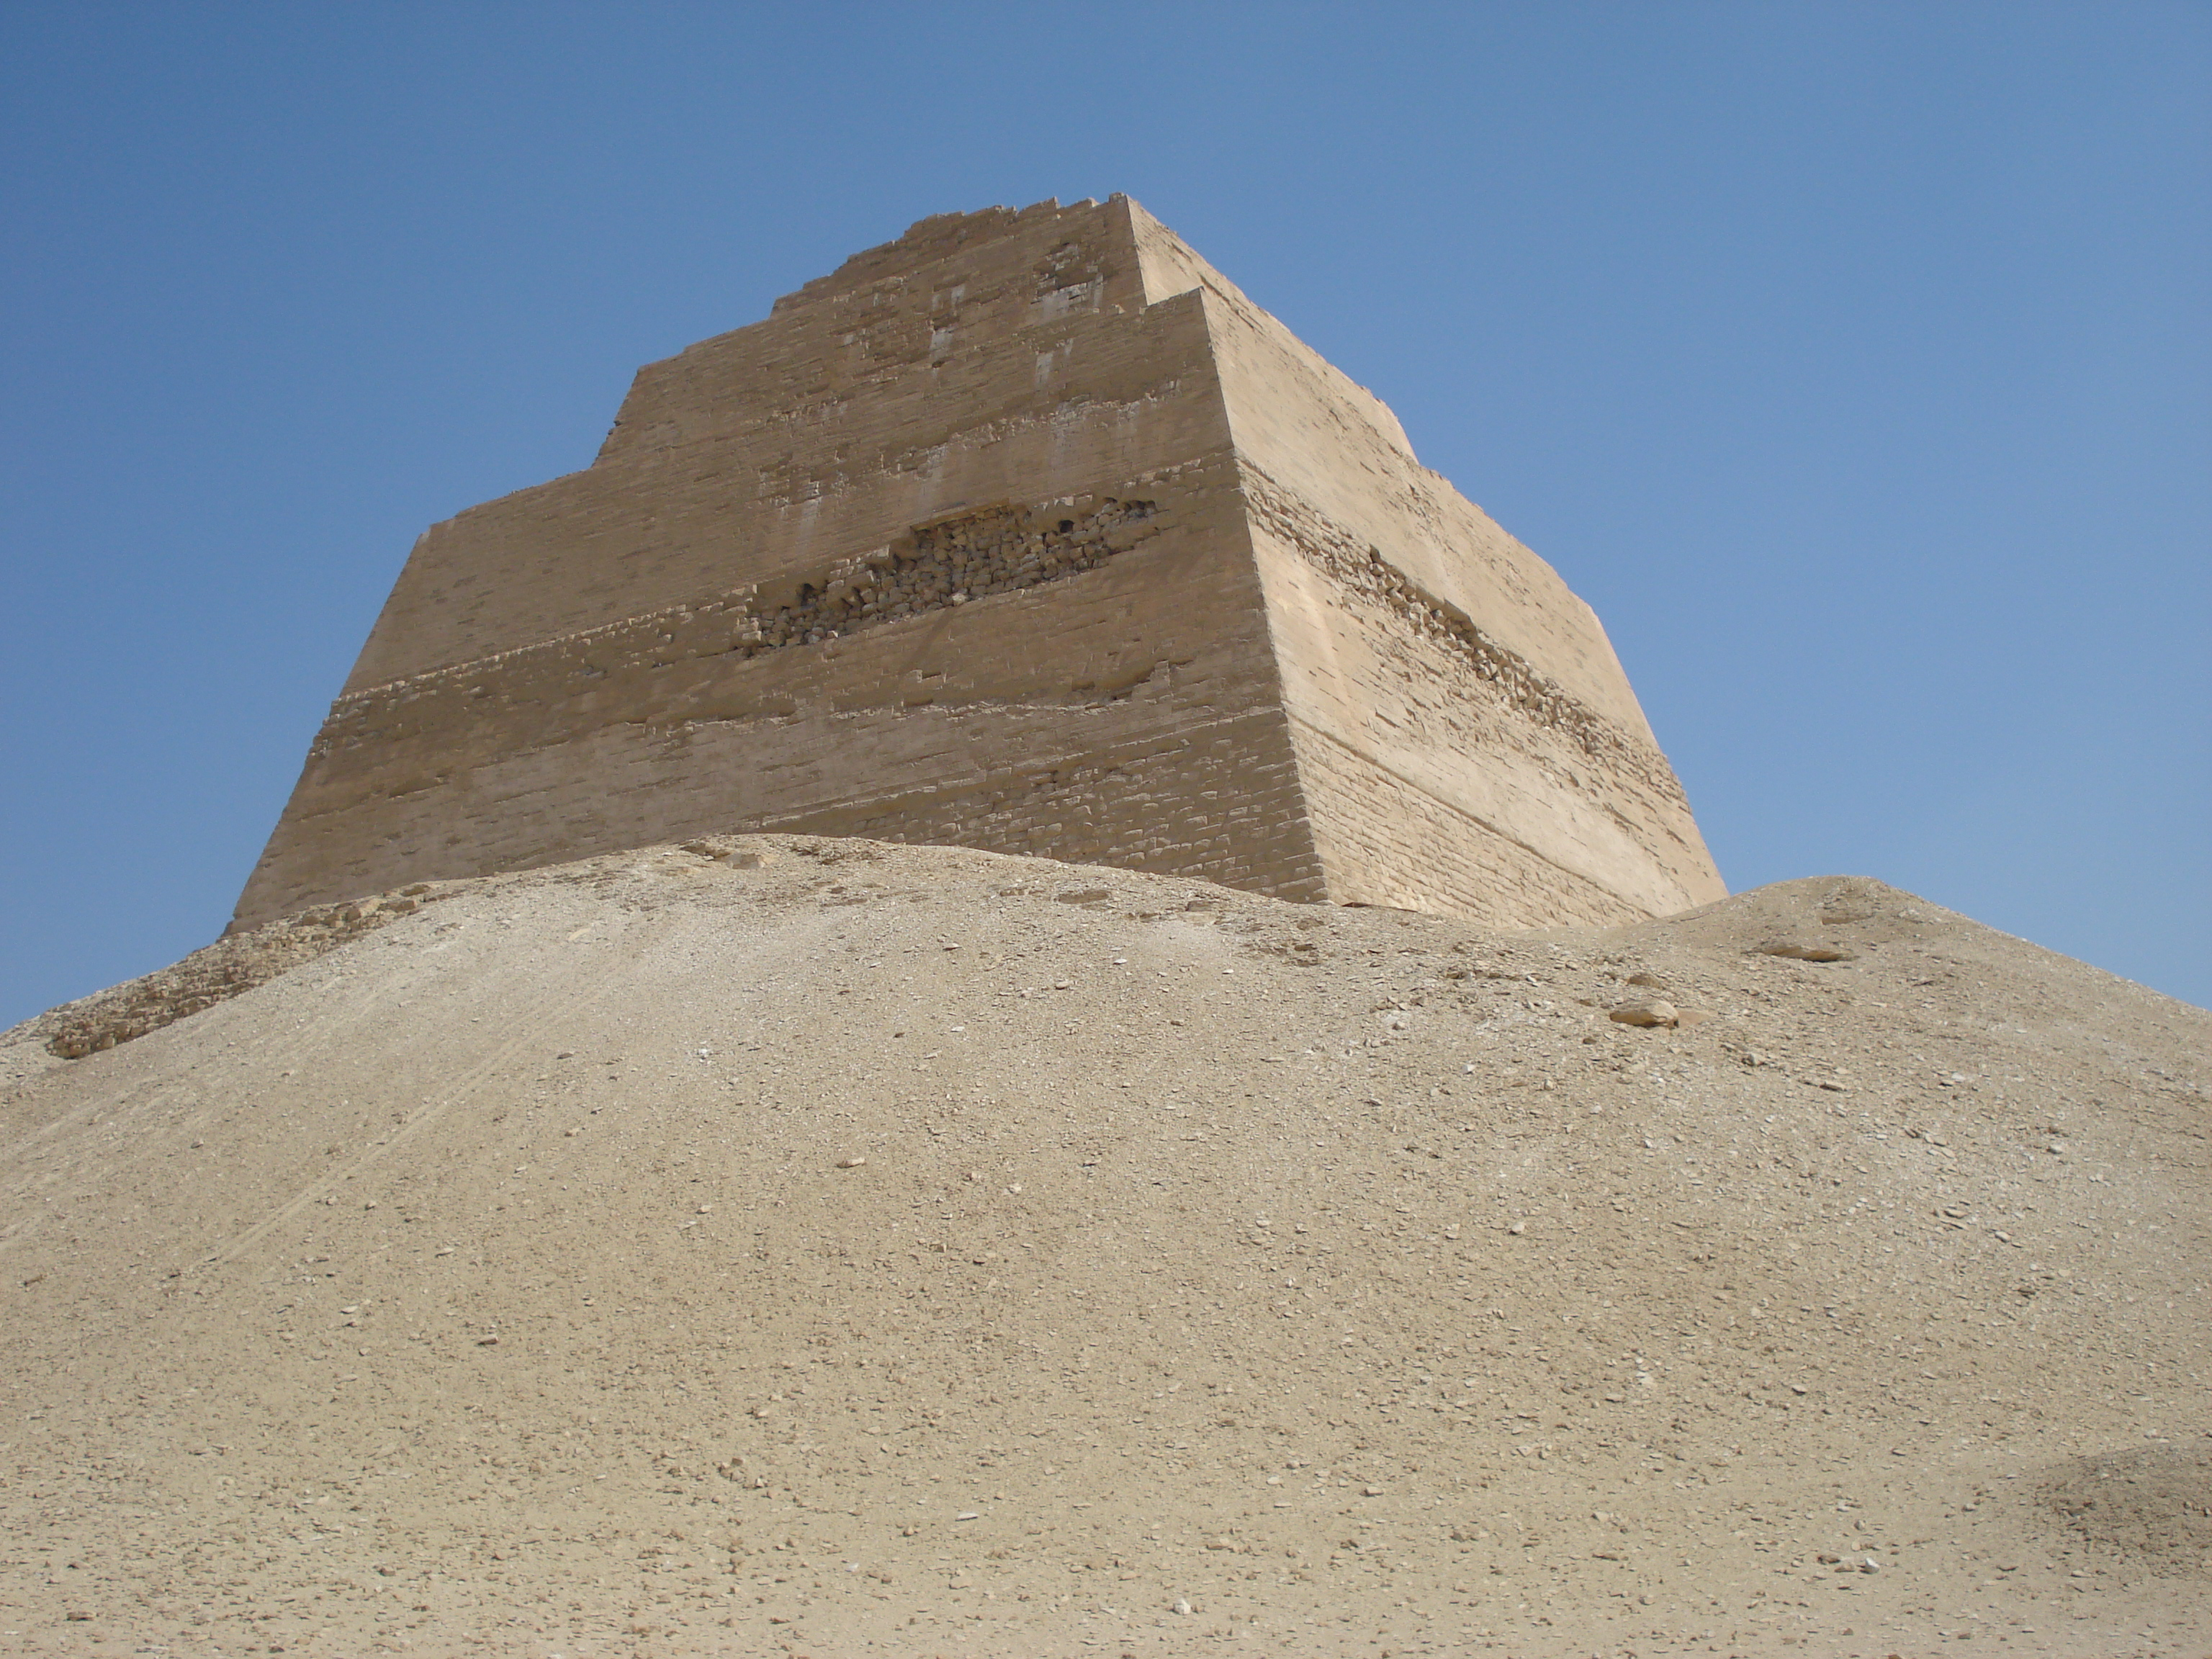 Meidum pyramid (Construction) - similarity image